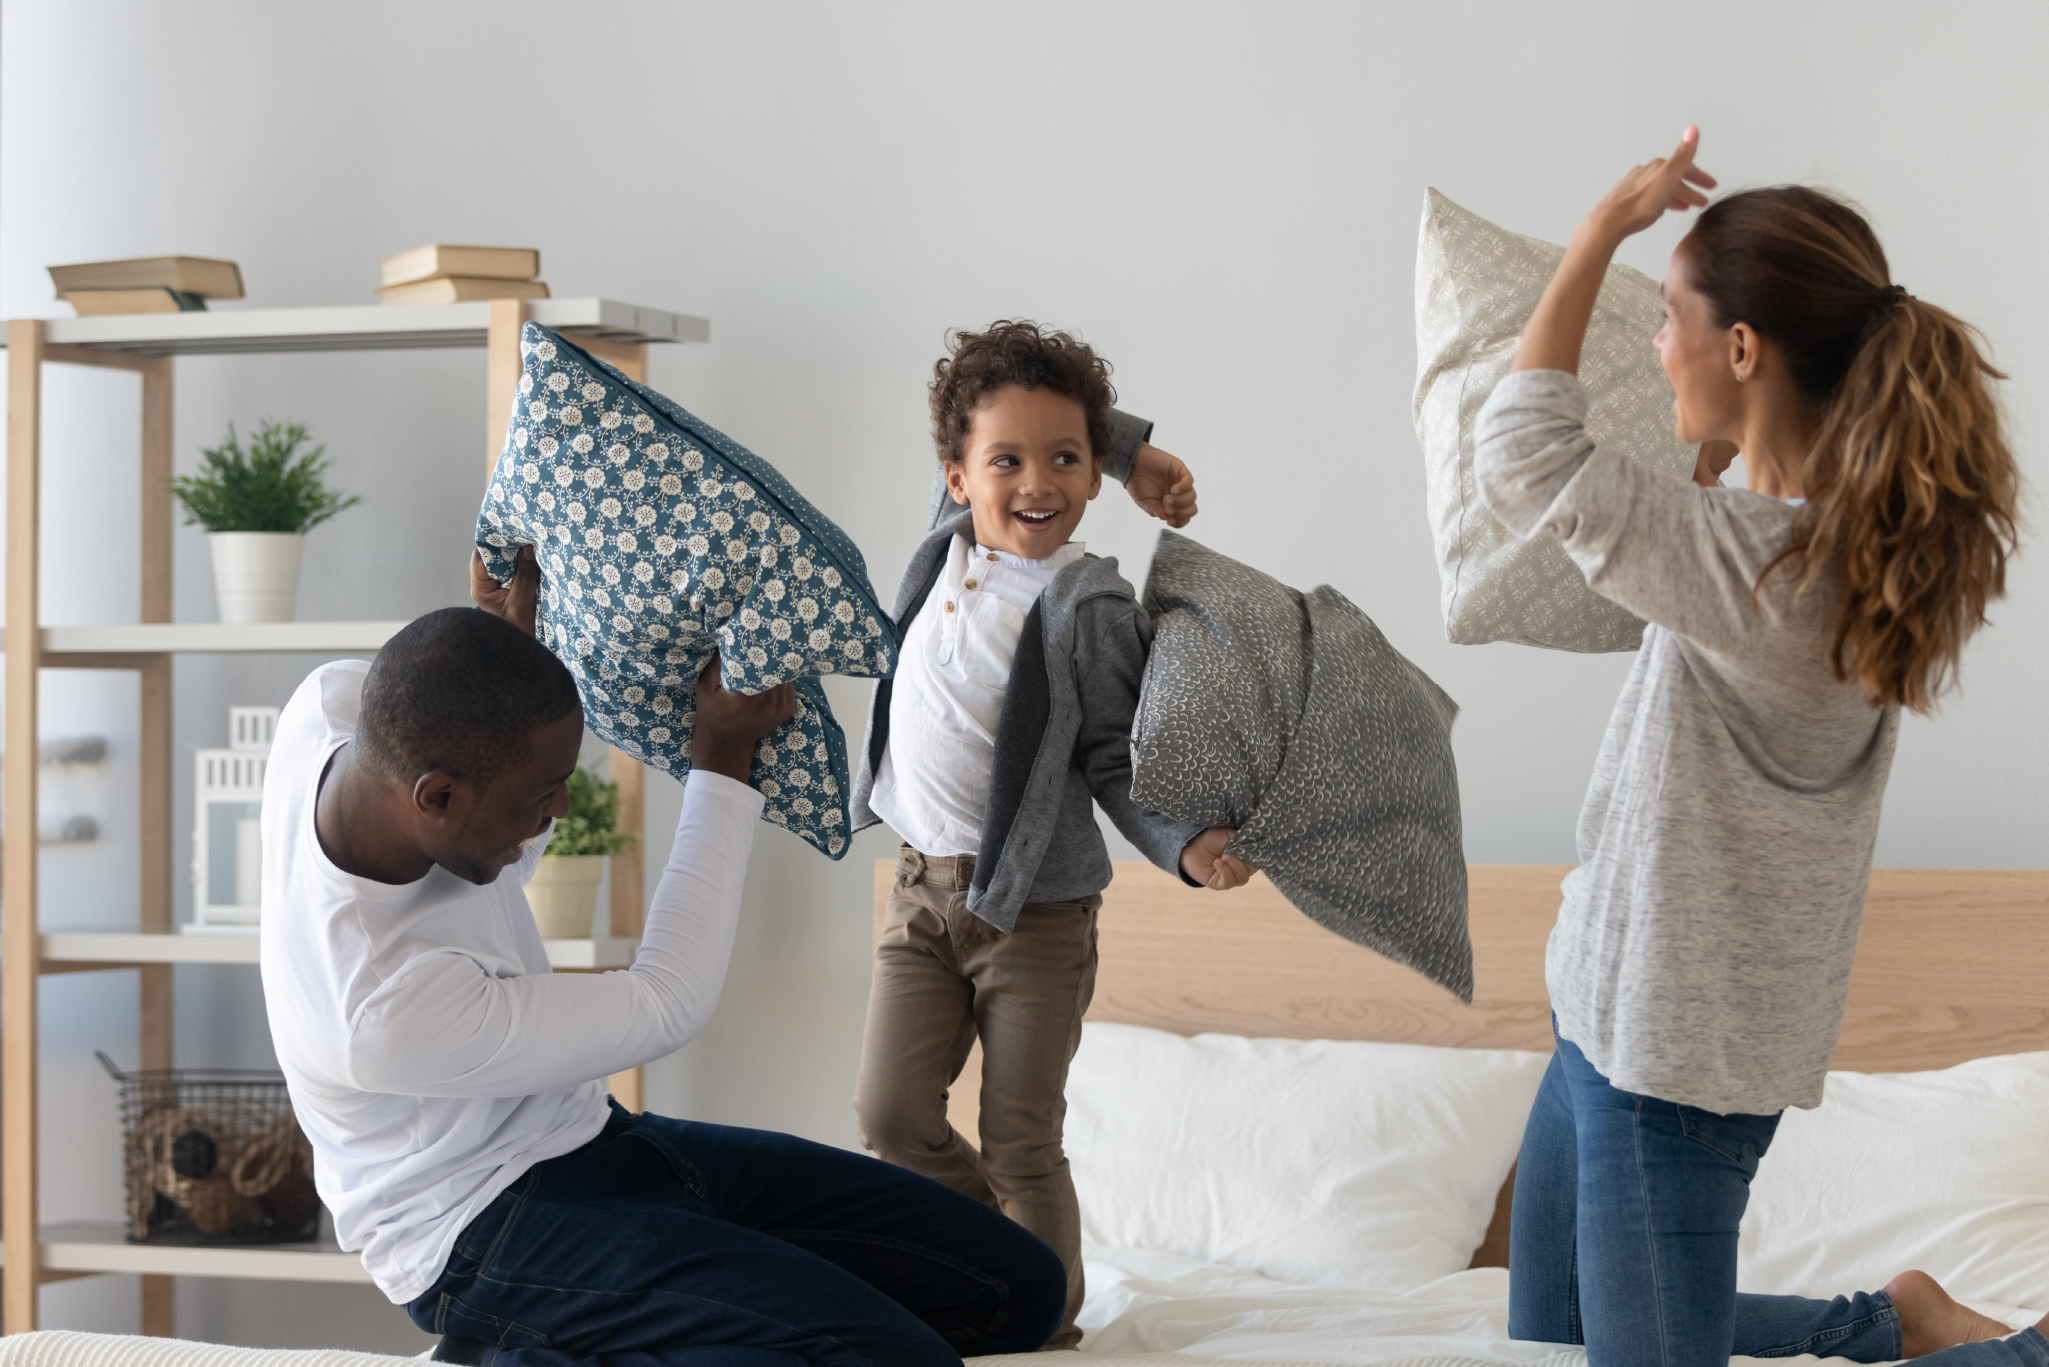 family having a pillow fight on their bed